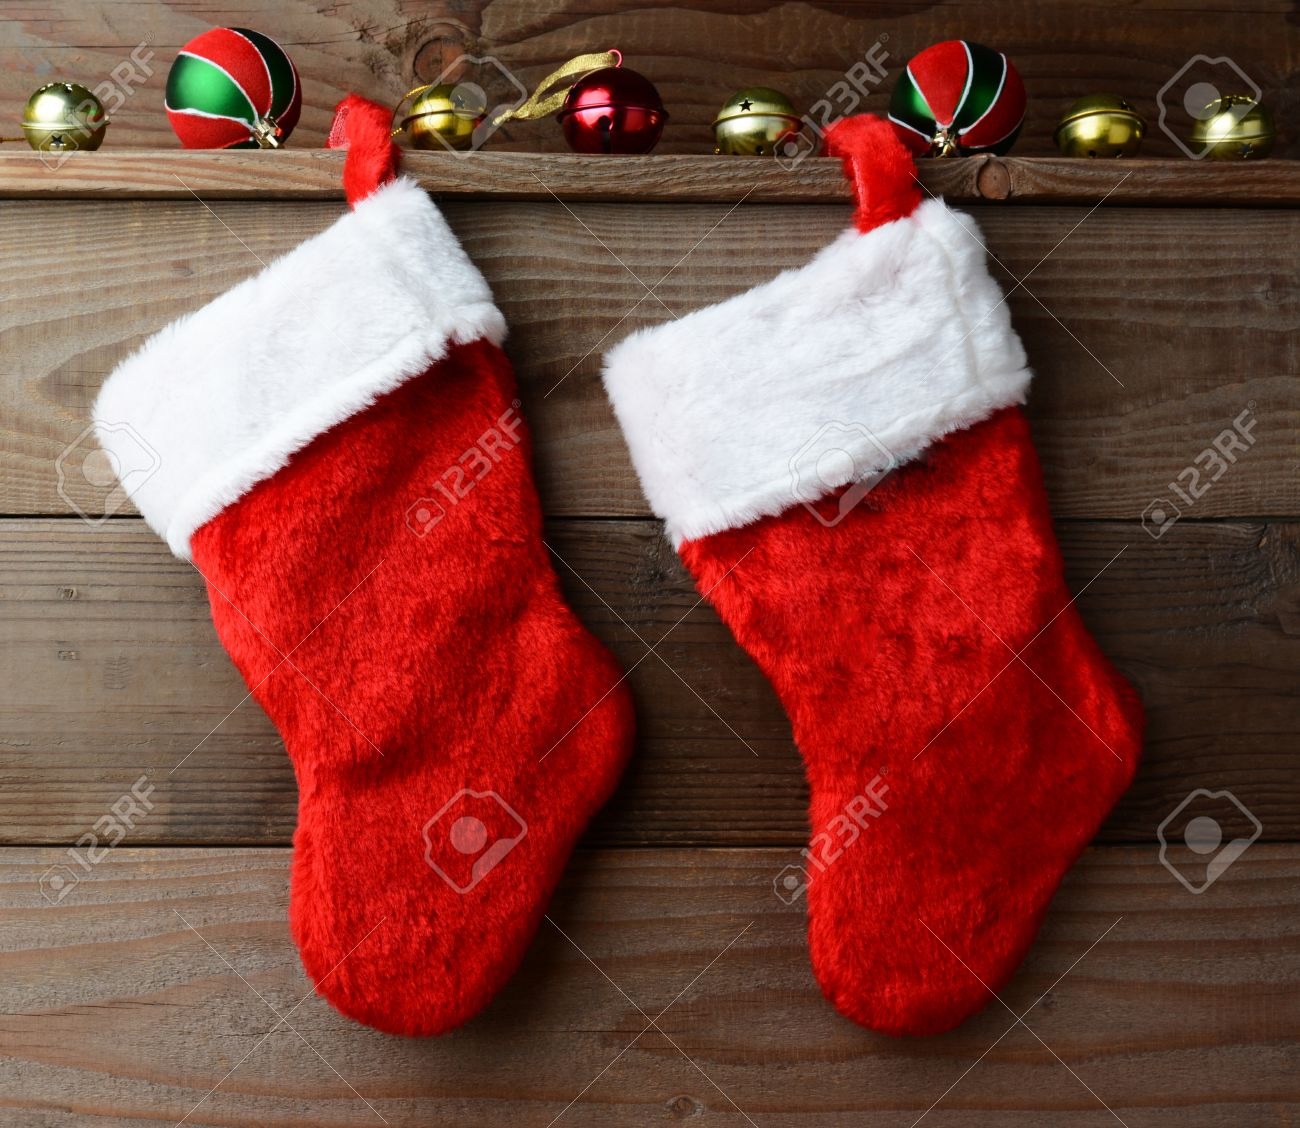 Stock photo two christmas stockings hung on a rustic wooden wall with sliegh bells and ornaments